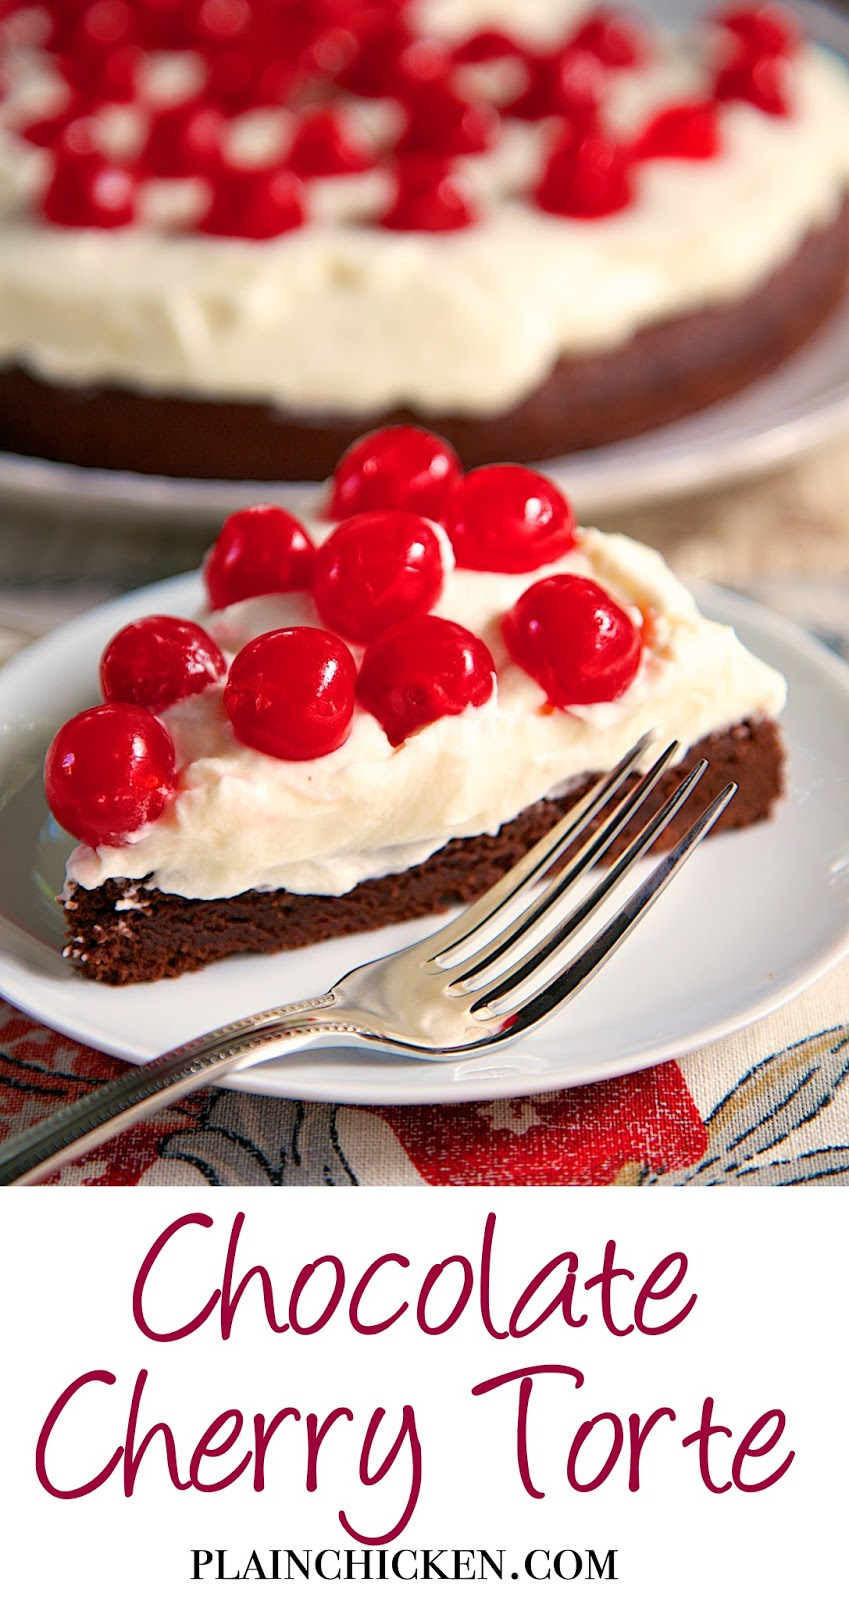 Chocolate Cherry Torte - brownie base topped with a whipped cream and mascarpone frosting. It is to-die-for! A real show stopper! Perfect for the holidays.